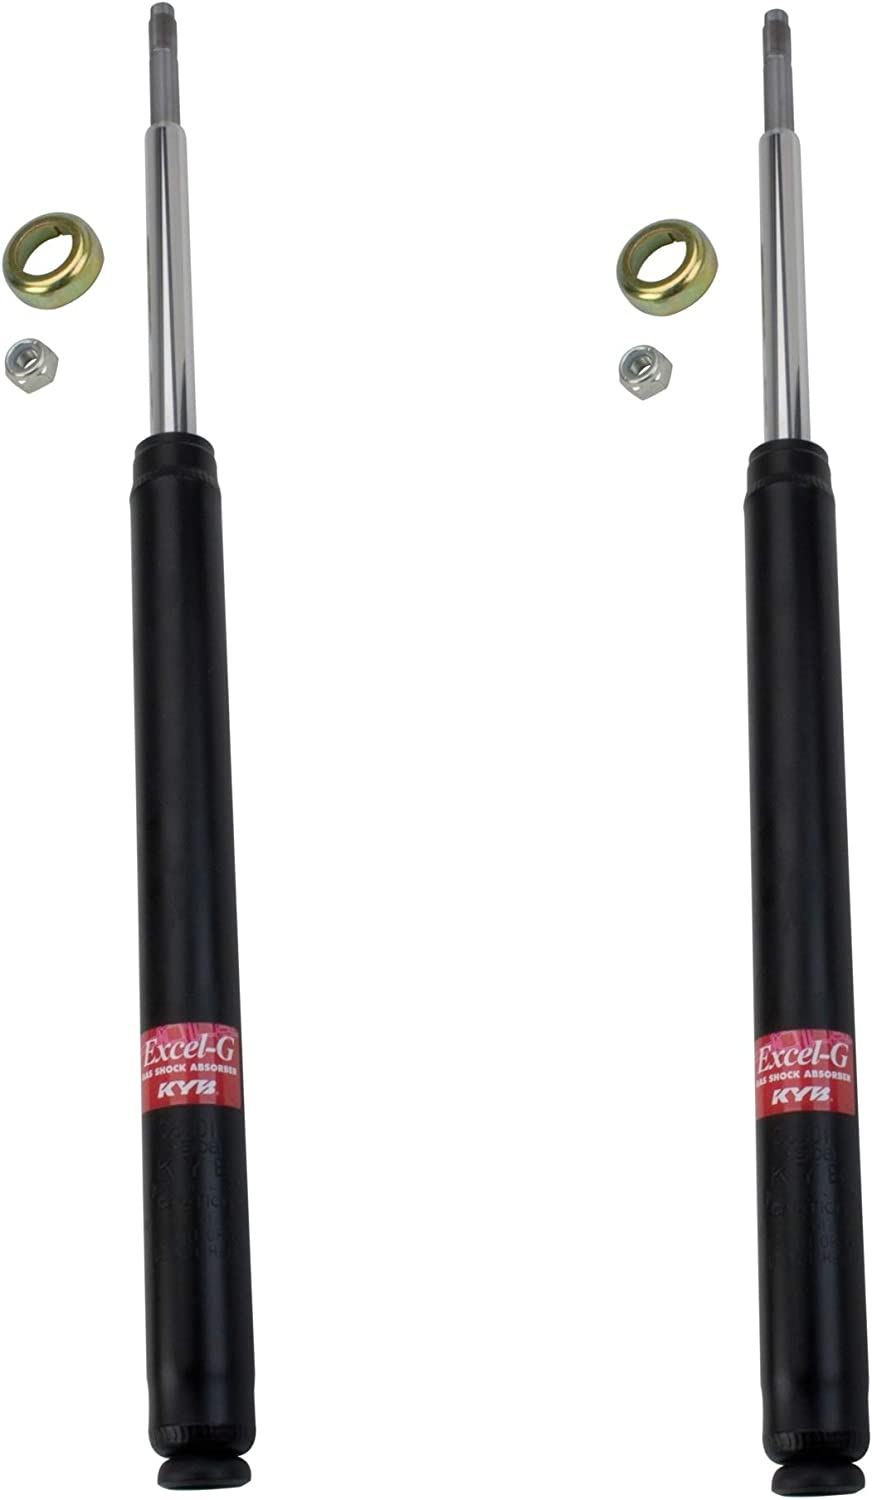 Amazon Com Pair Set Of 2 Front Kyb Excel G Suspension Strut Cartridges For Volkswagen Super Beetle 1971 1973 Thru Chassis No 1 333 003 656 Automotive